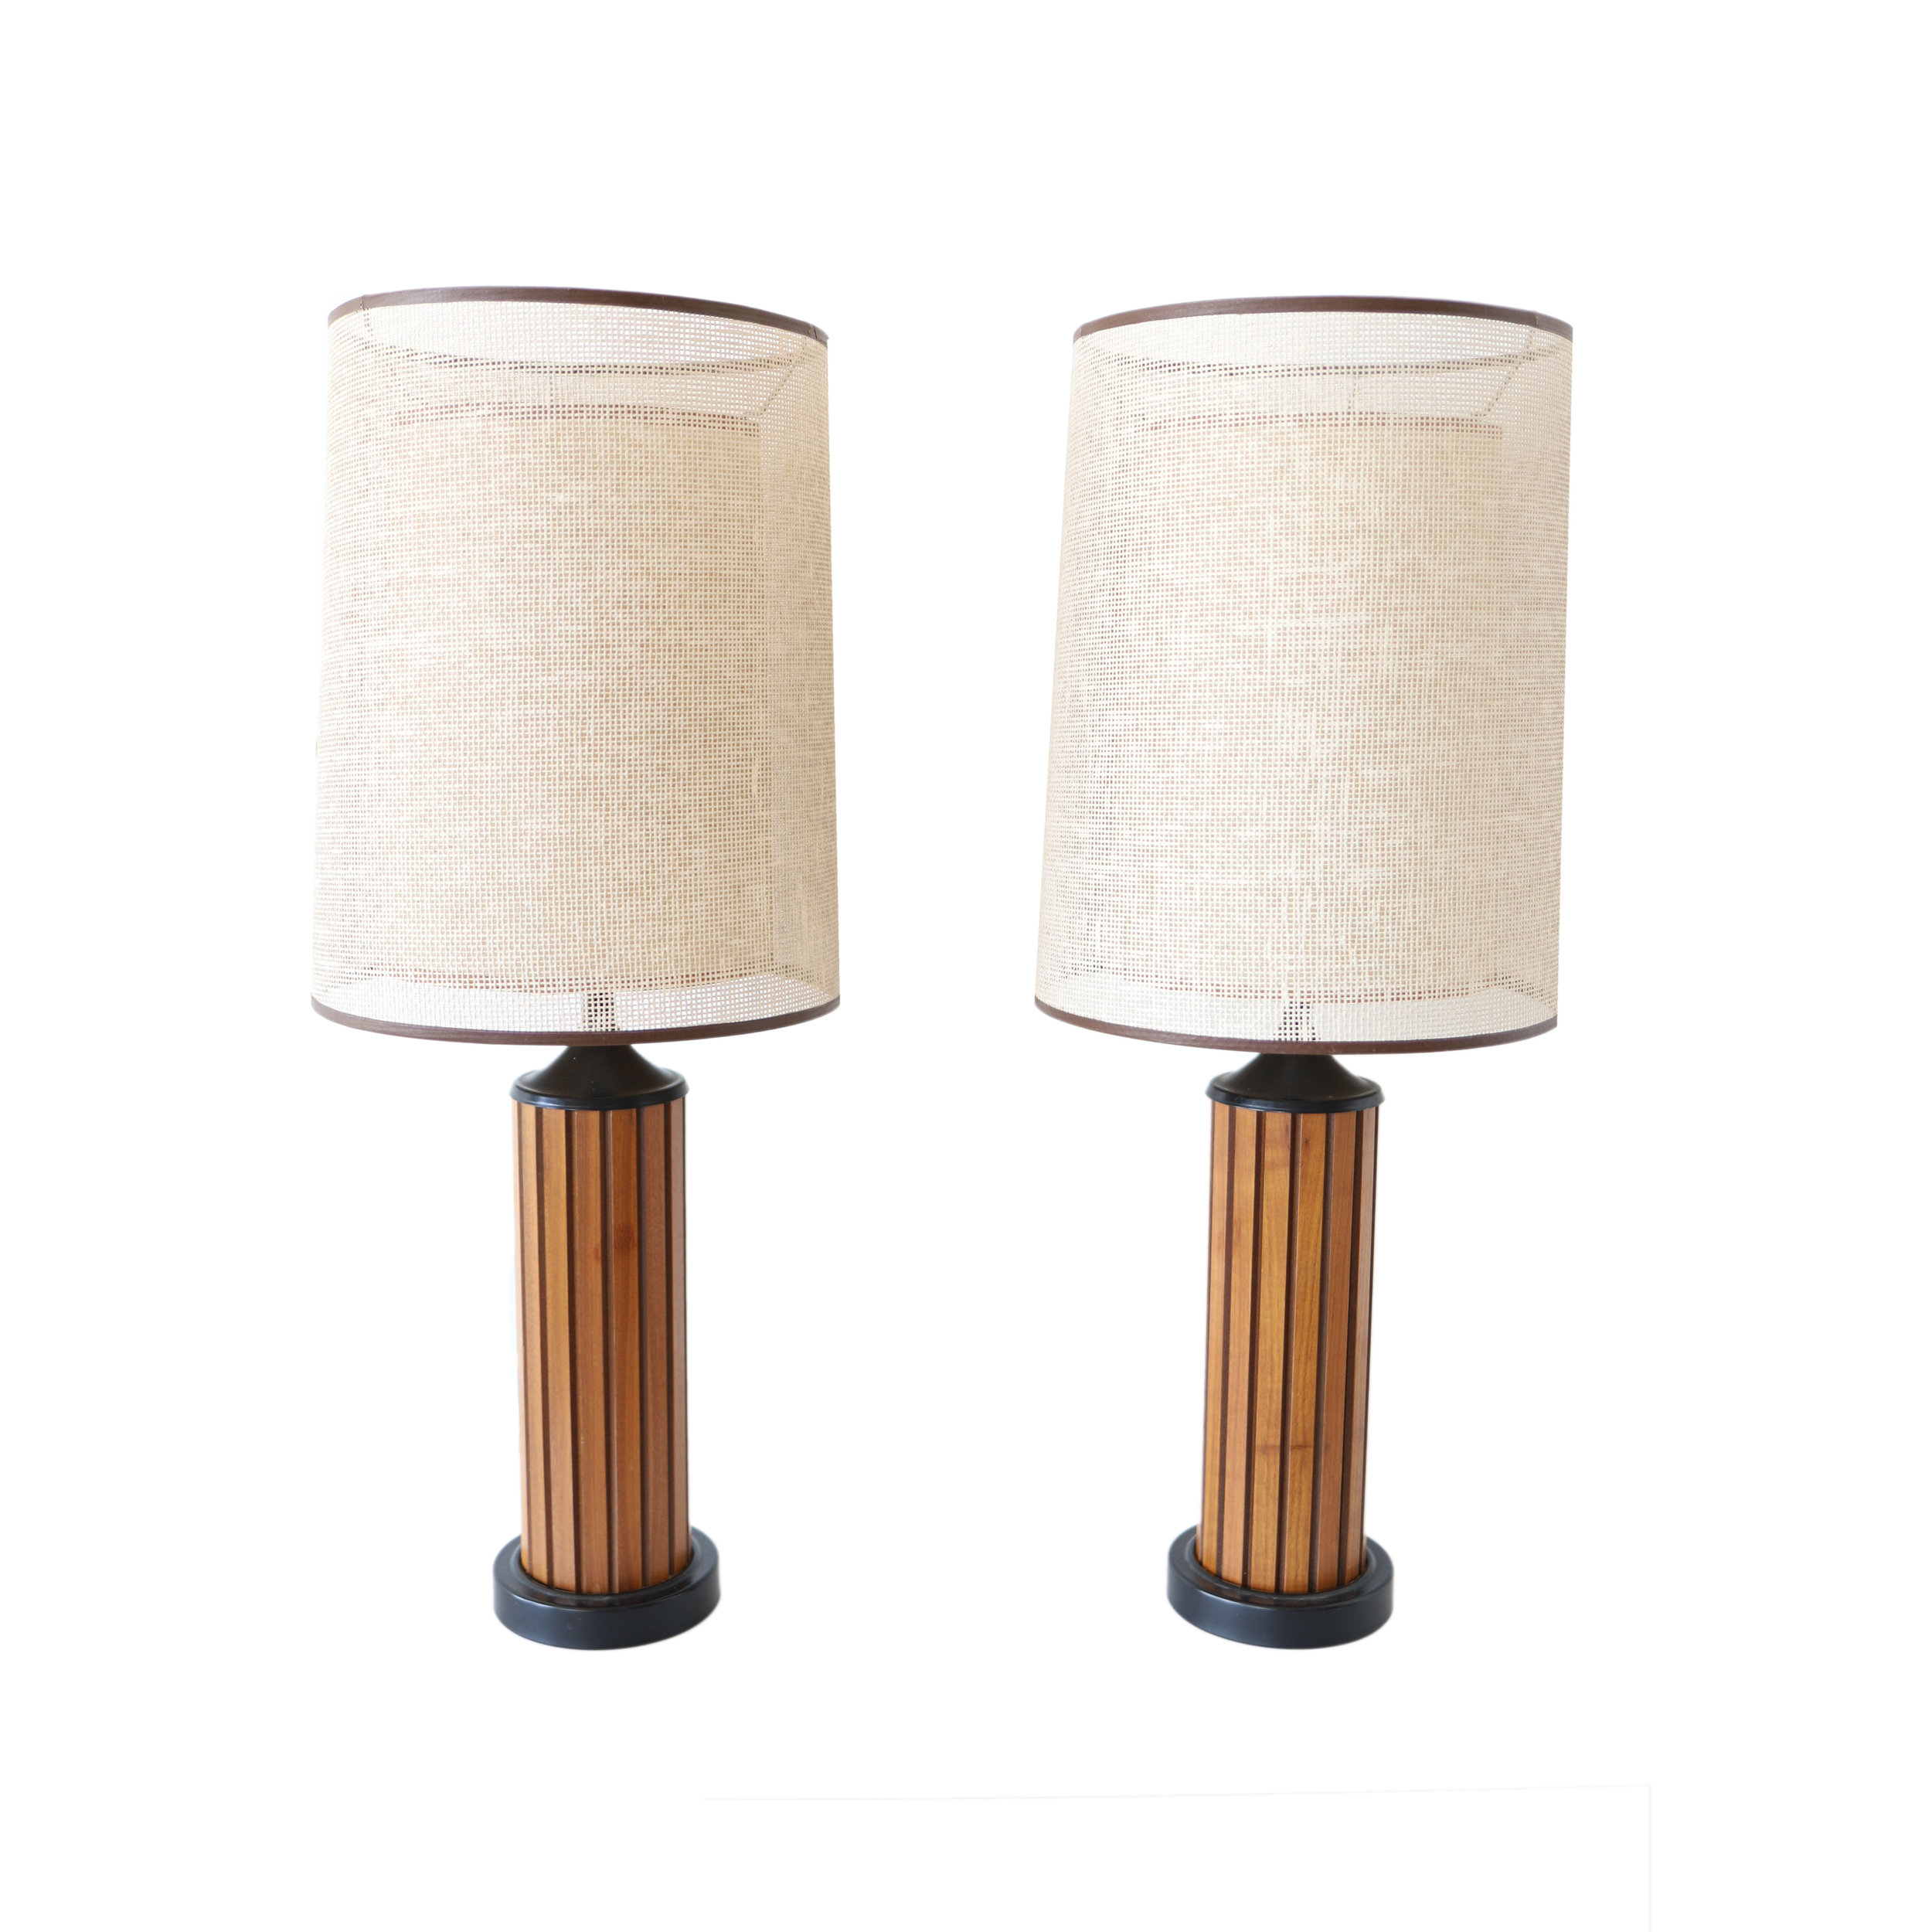 At 1st Sight New Products Pair Of Tall Vintage Mid Century Modern Slat Table Lamps